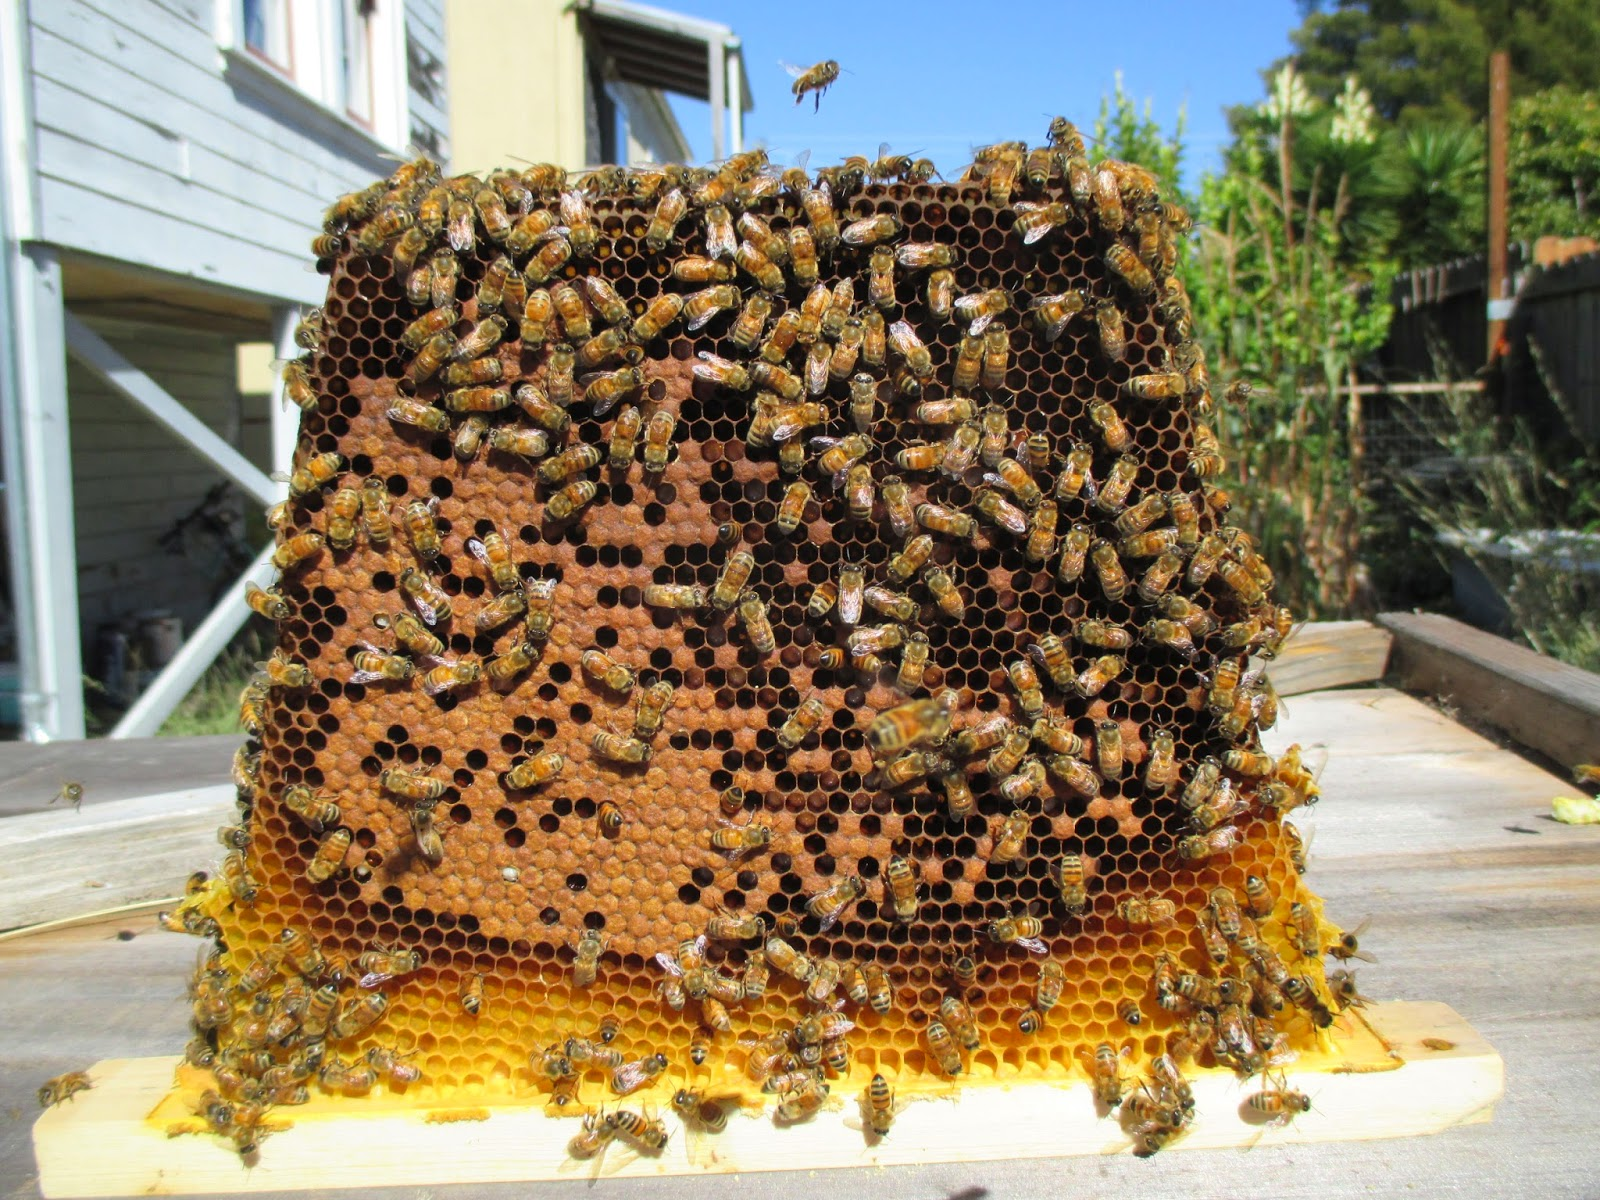 New to bees.: Anatomy of a hive death